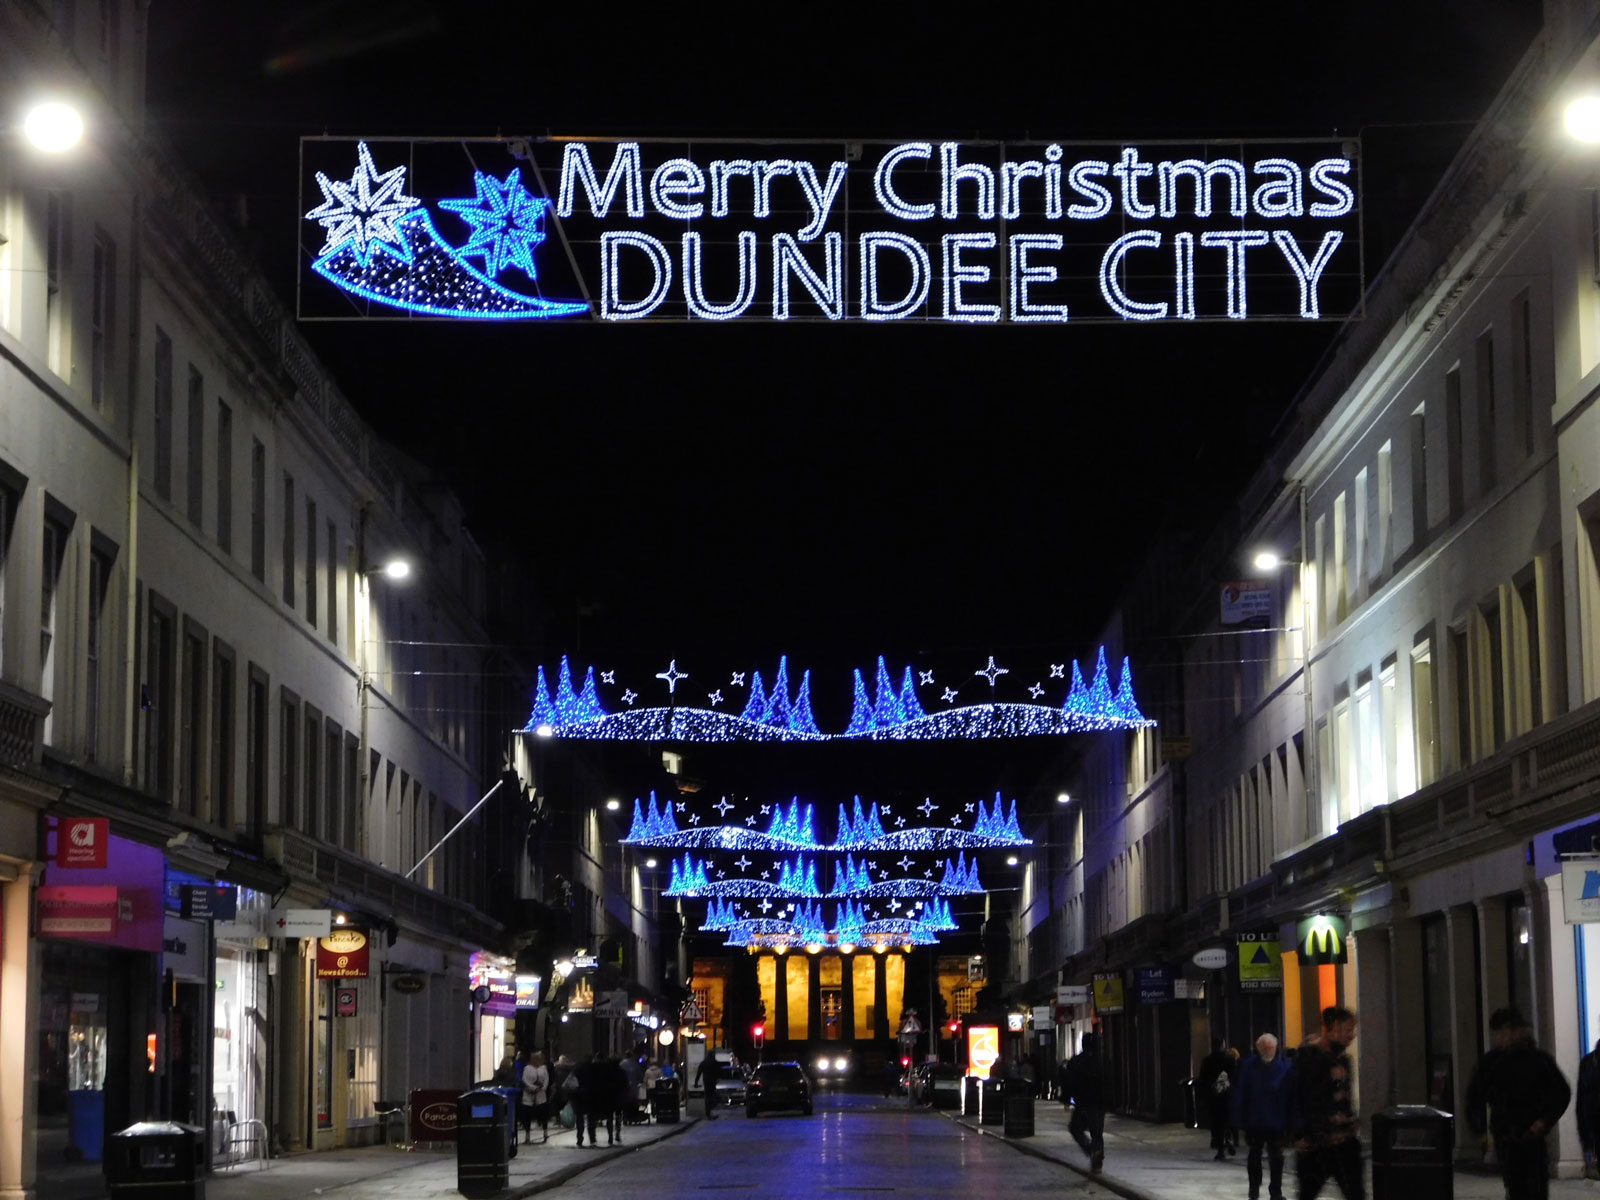 Merry Christmas Dundee City